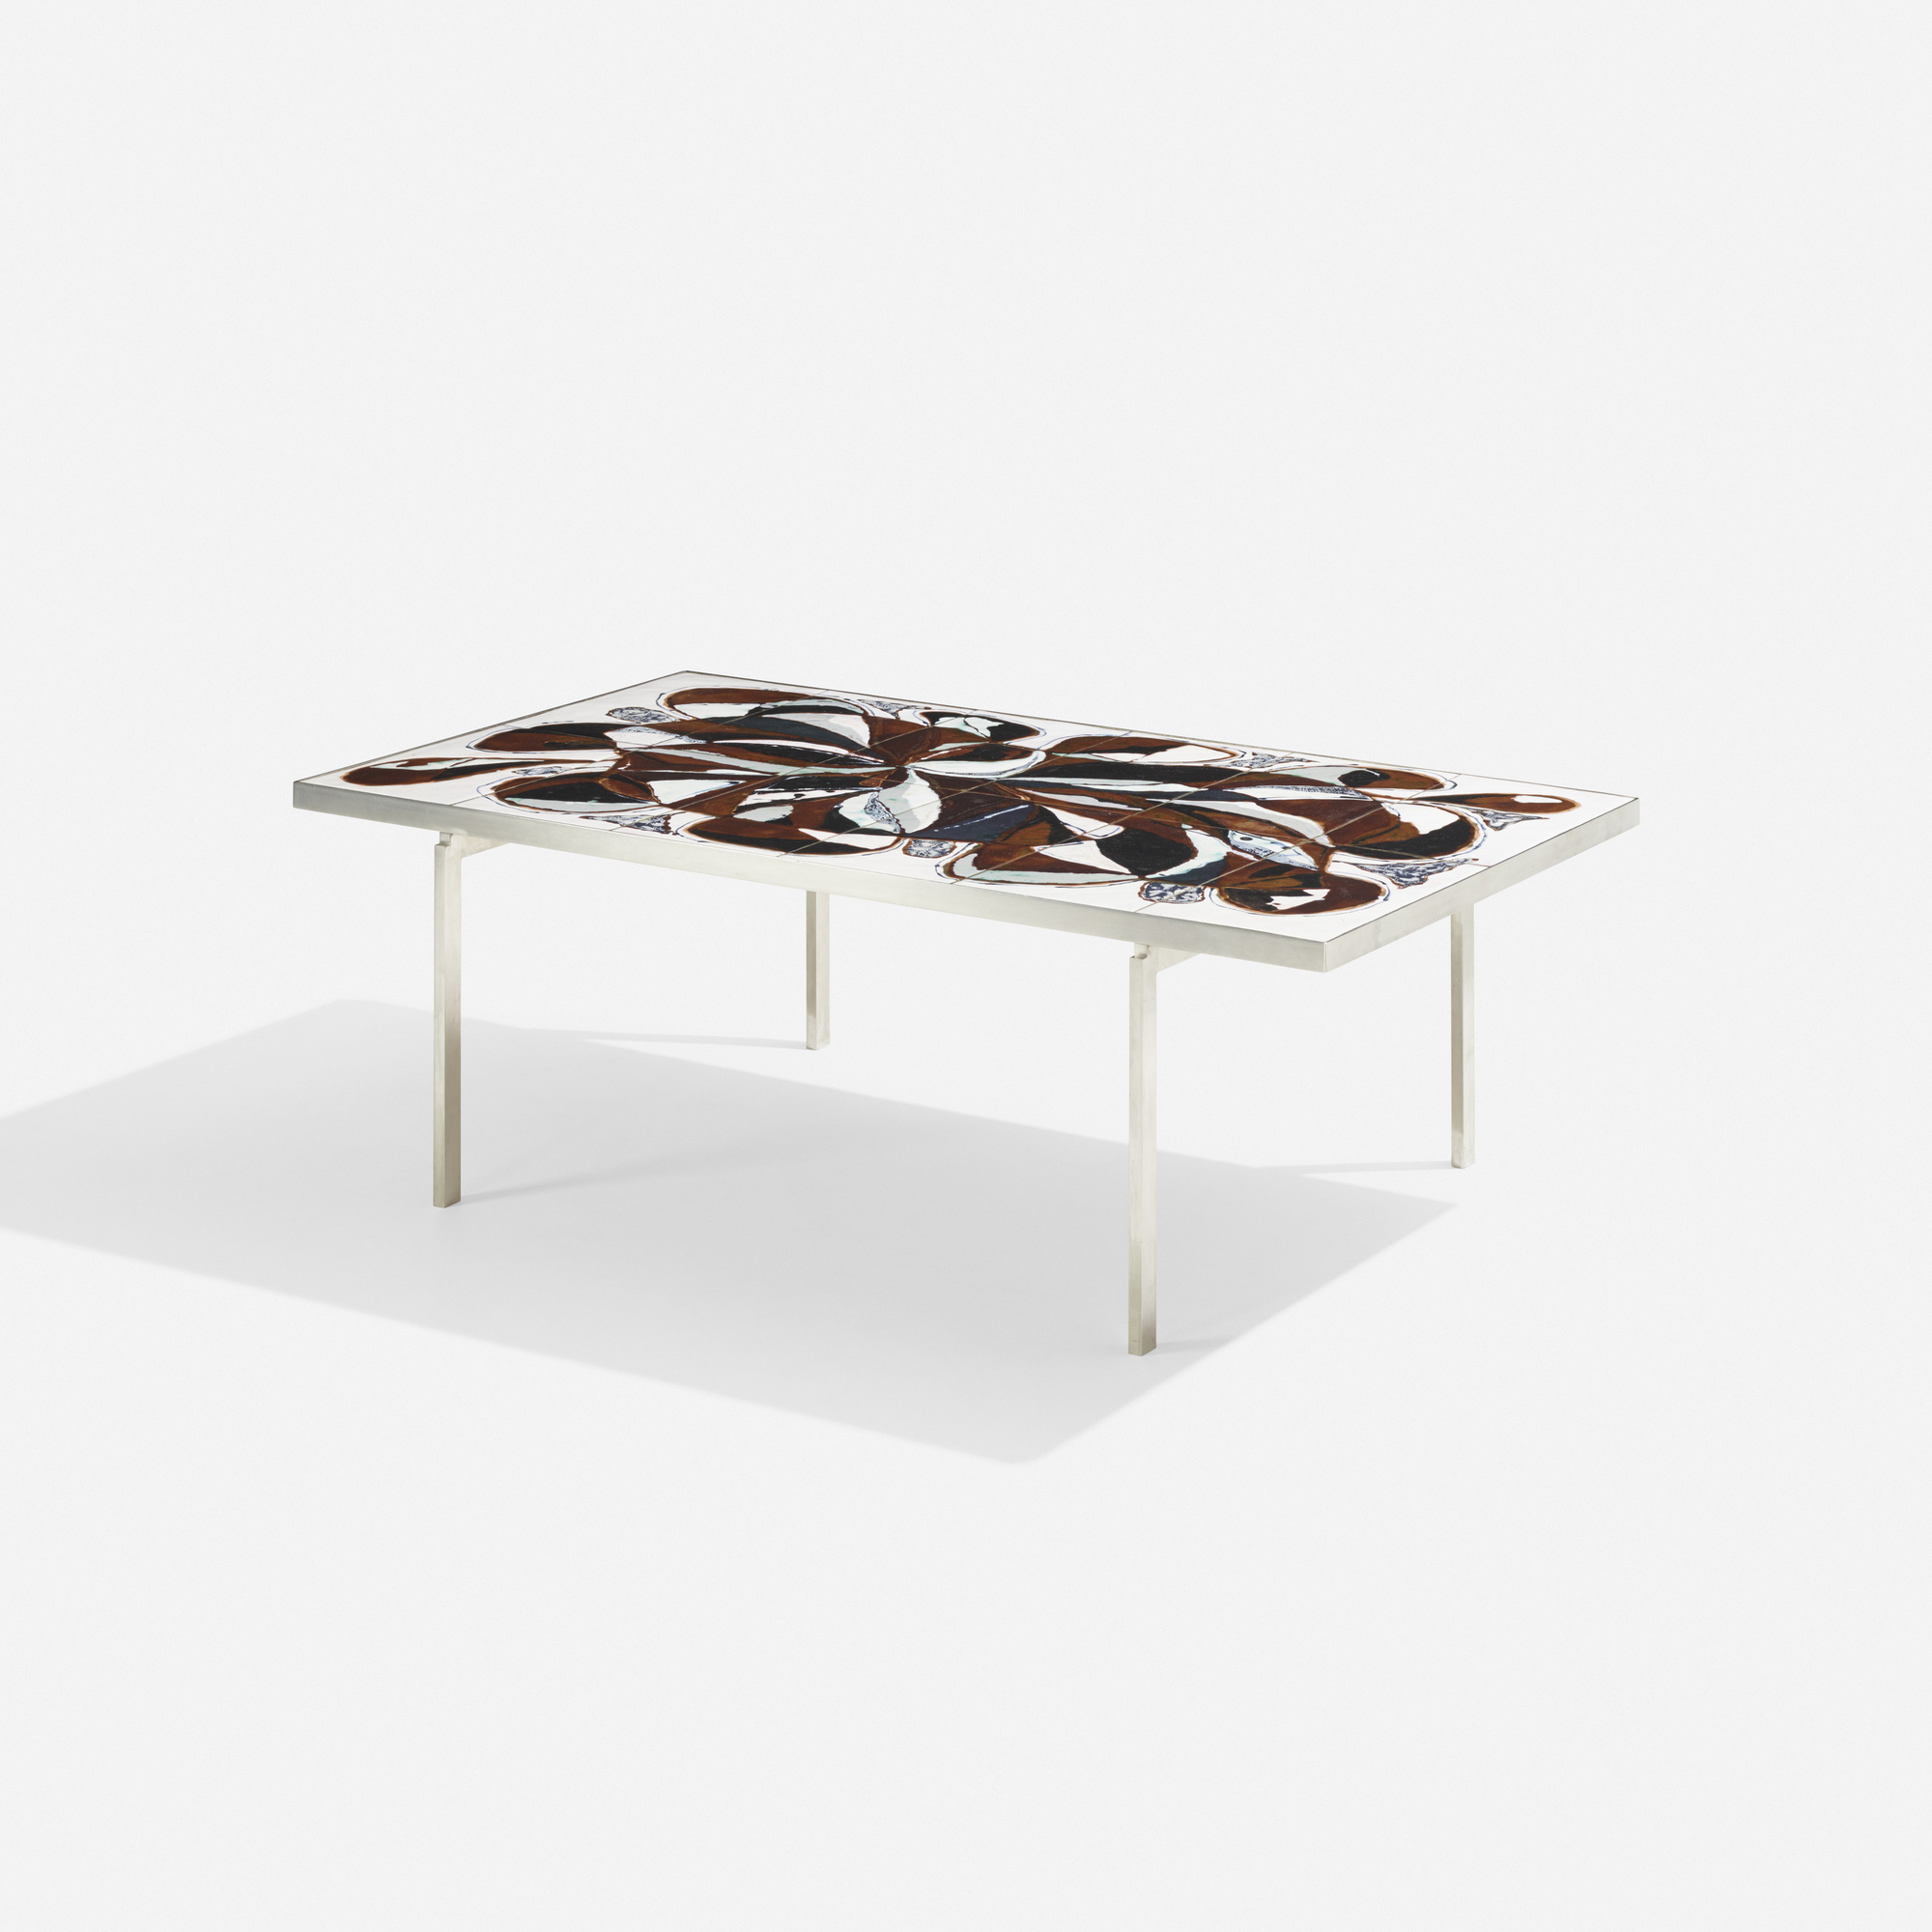 228: Bodil Eje / coffee table (1 of 1)